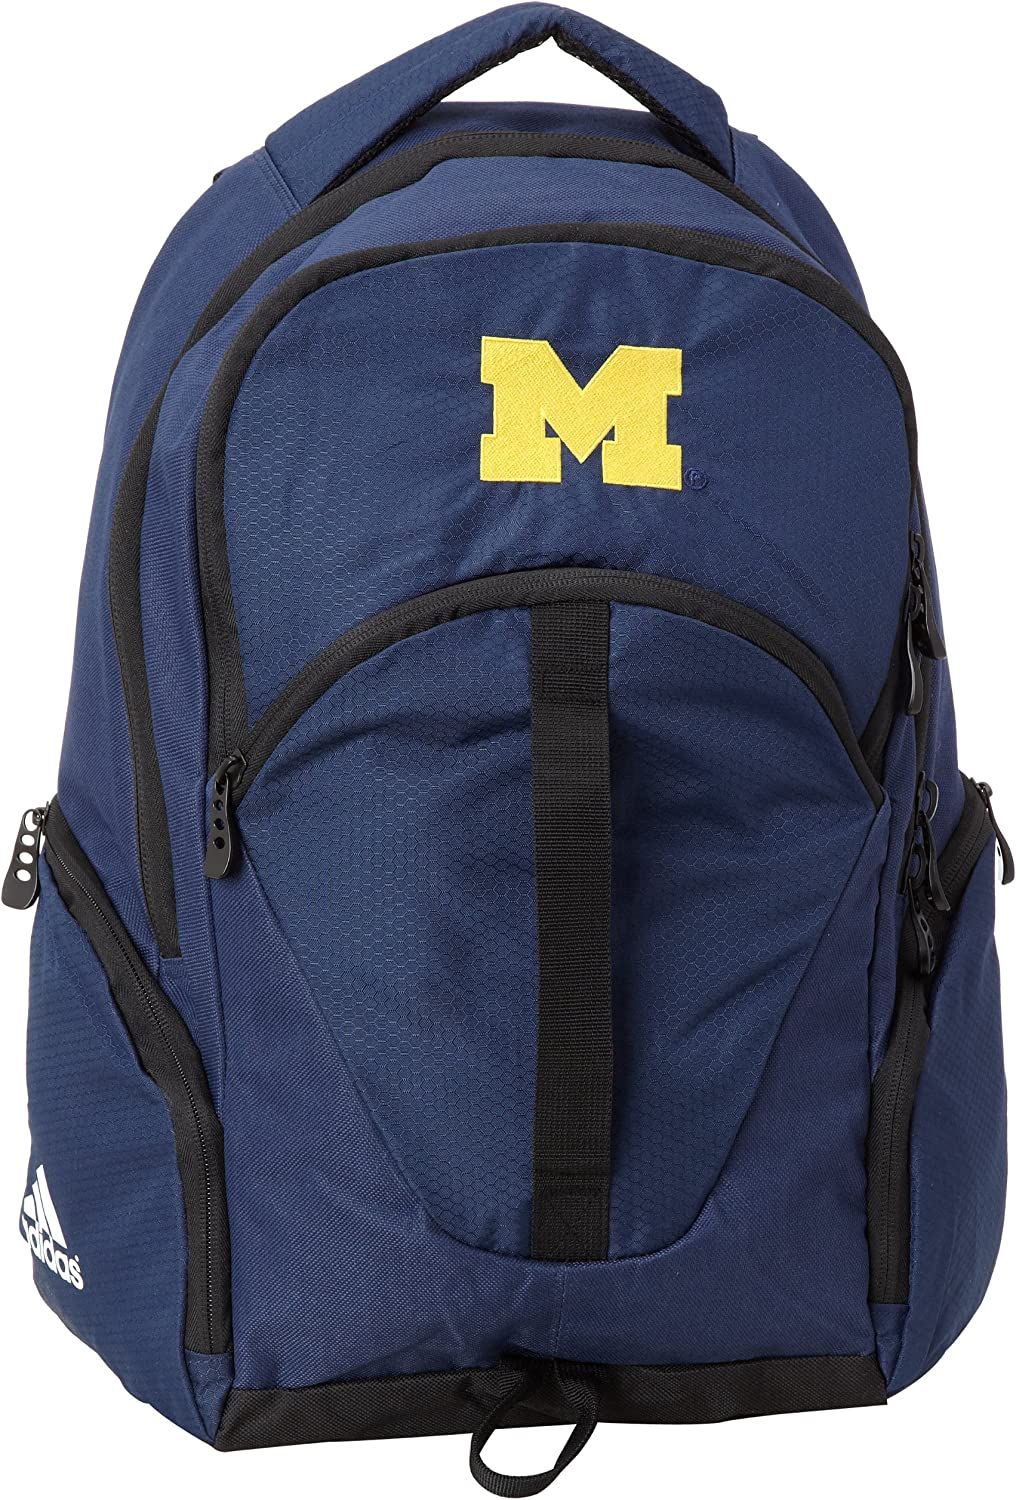 NCAA Michigan Backpack Wolverines Seattle Mall Max 85% OFF